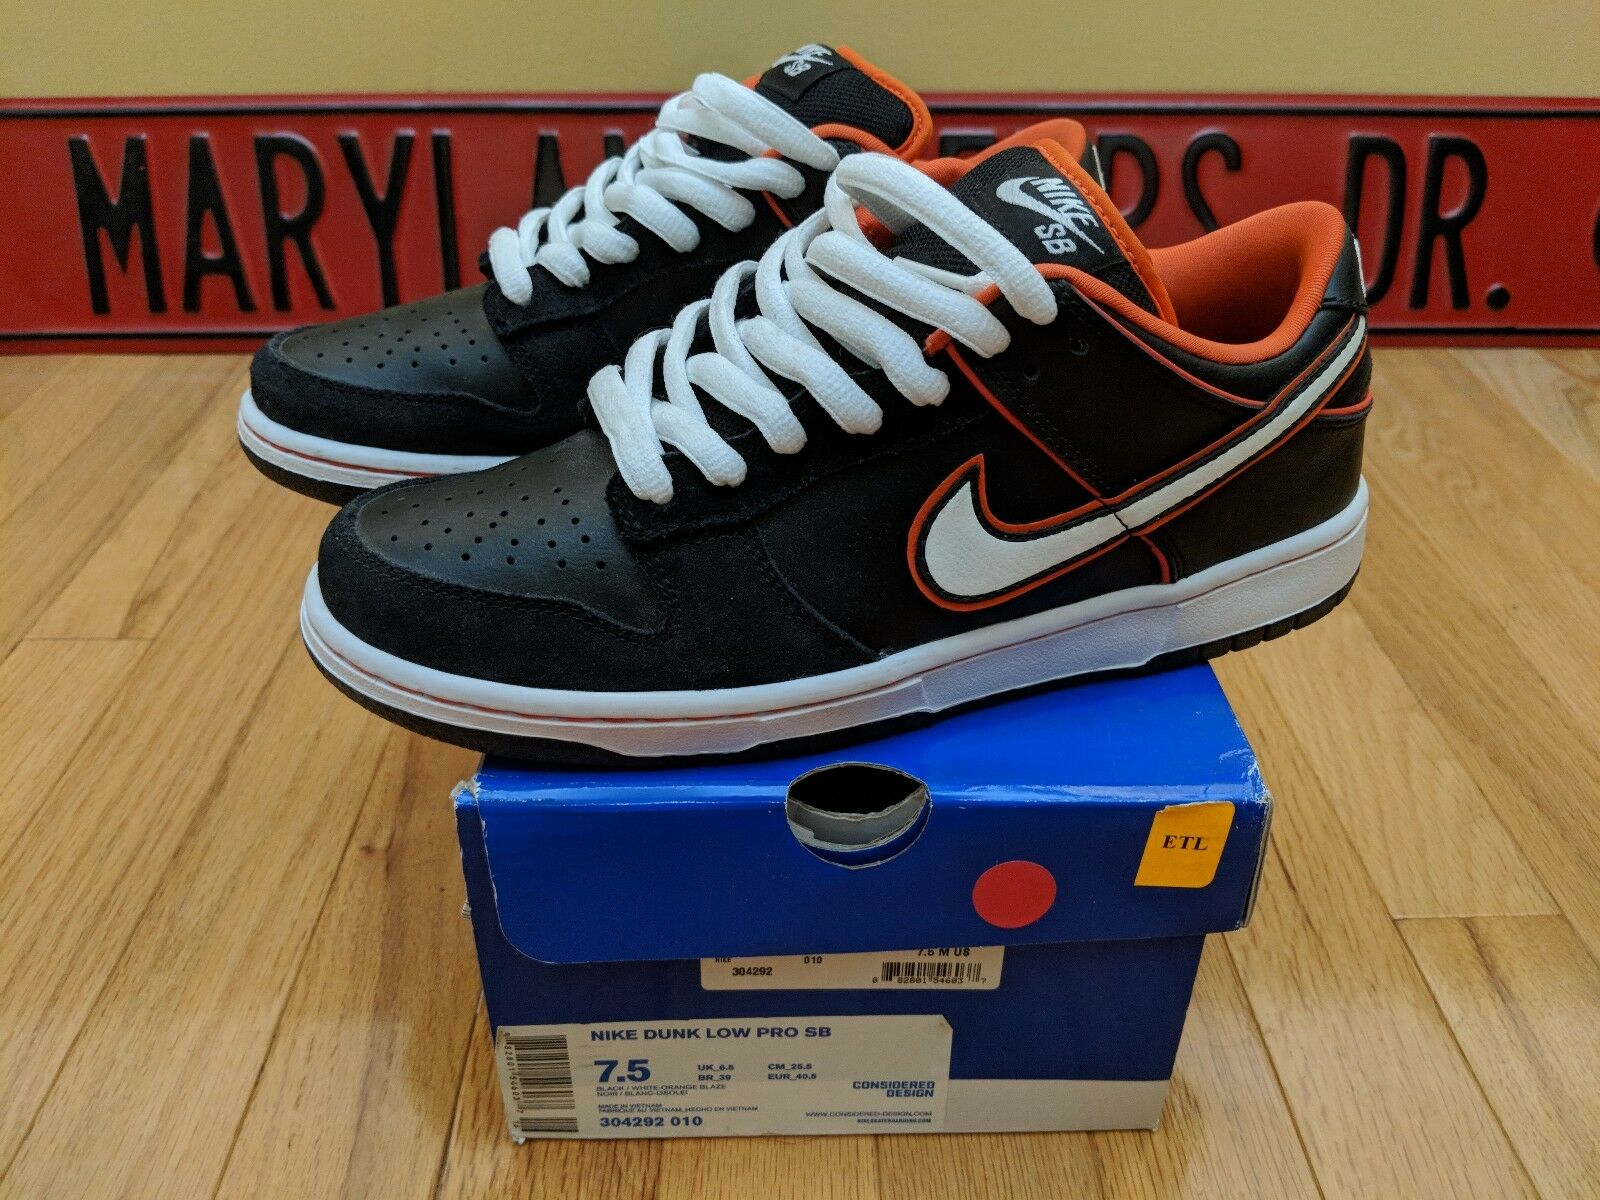 Nike Dunk Low Pro SB Giants Orange Blaze 304292-010 Mens Comfortable The latest discount shoes for men and women